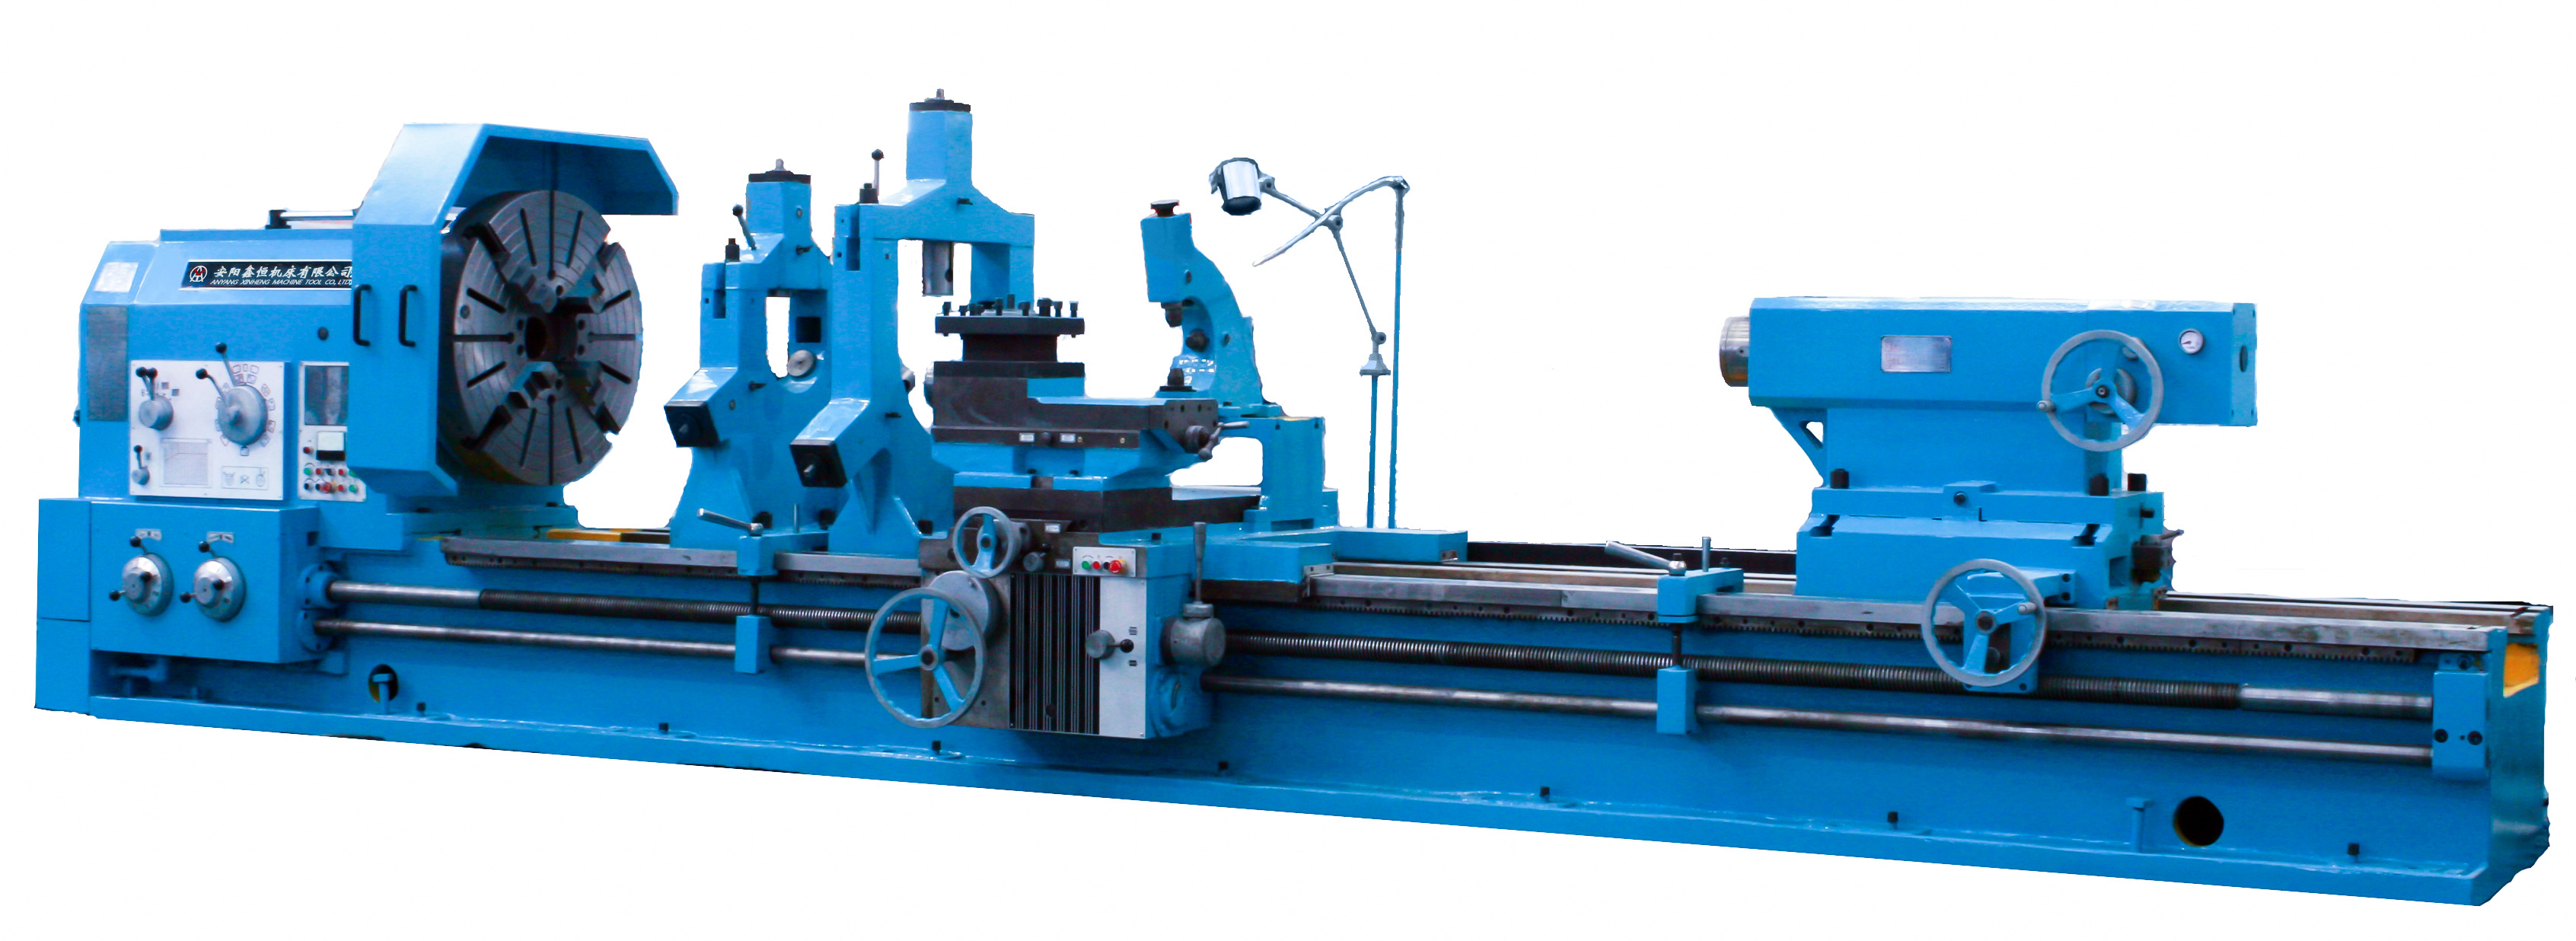 CW61125 Professional high precision large heavy duty lathe From China